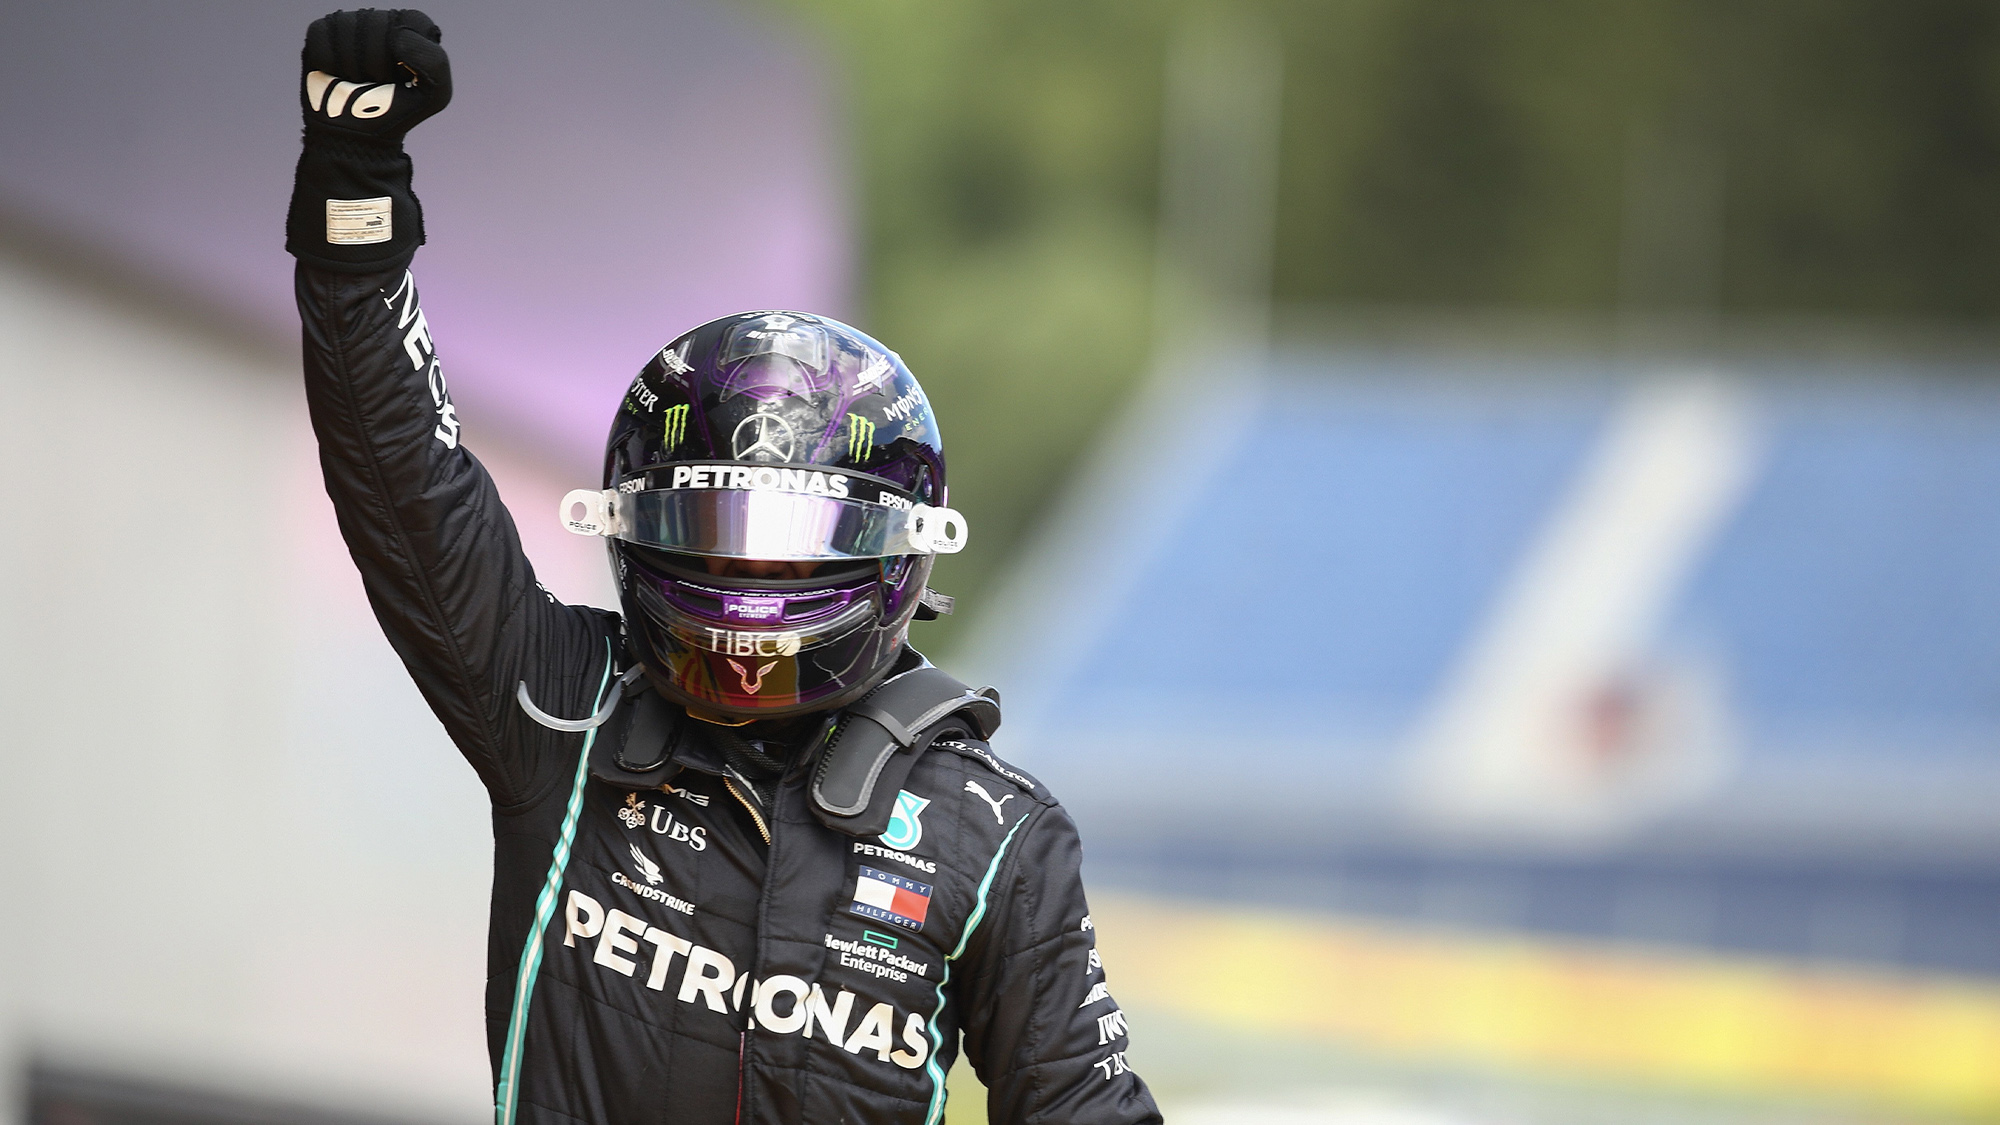 2020 Styrian Grand Prix dominated by Hamilton: race results